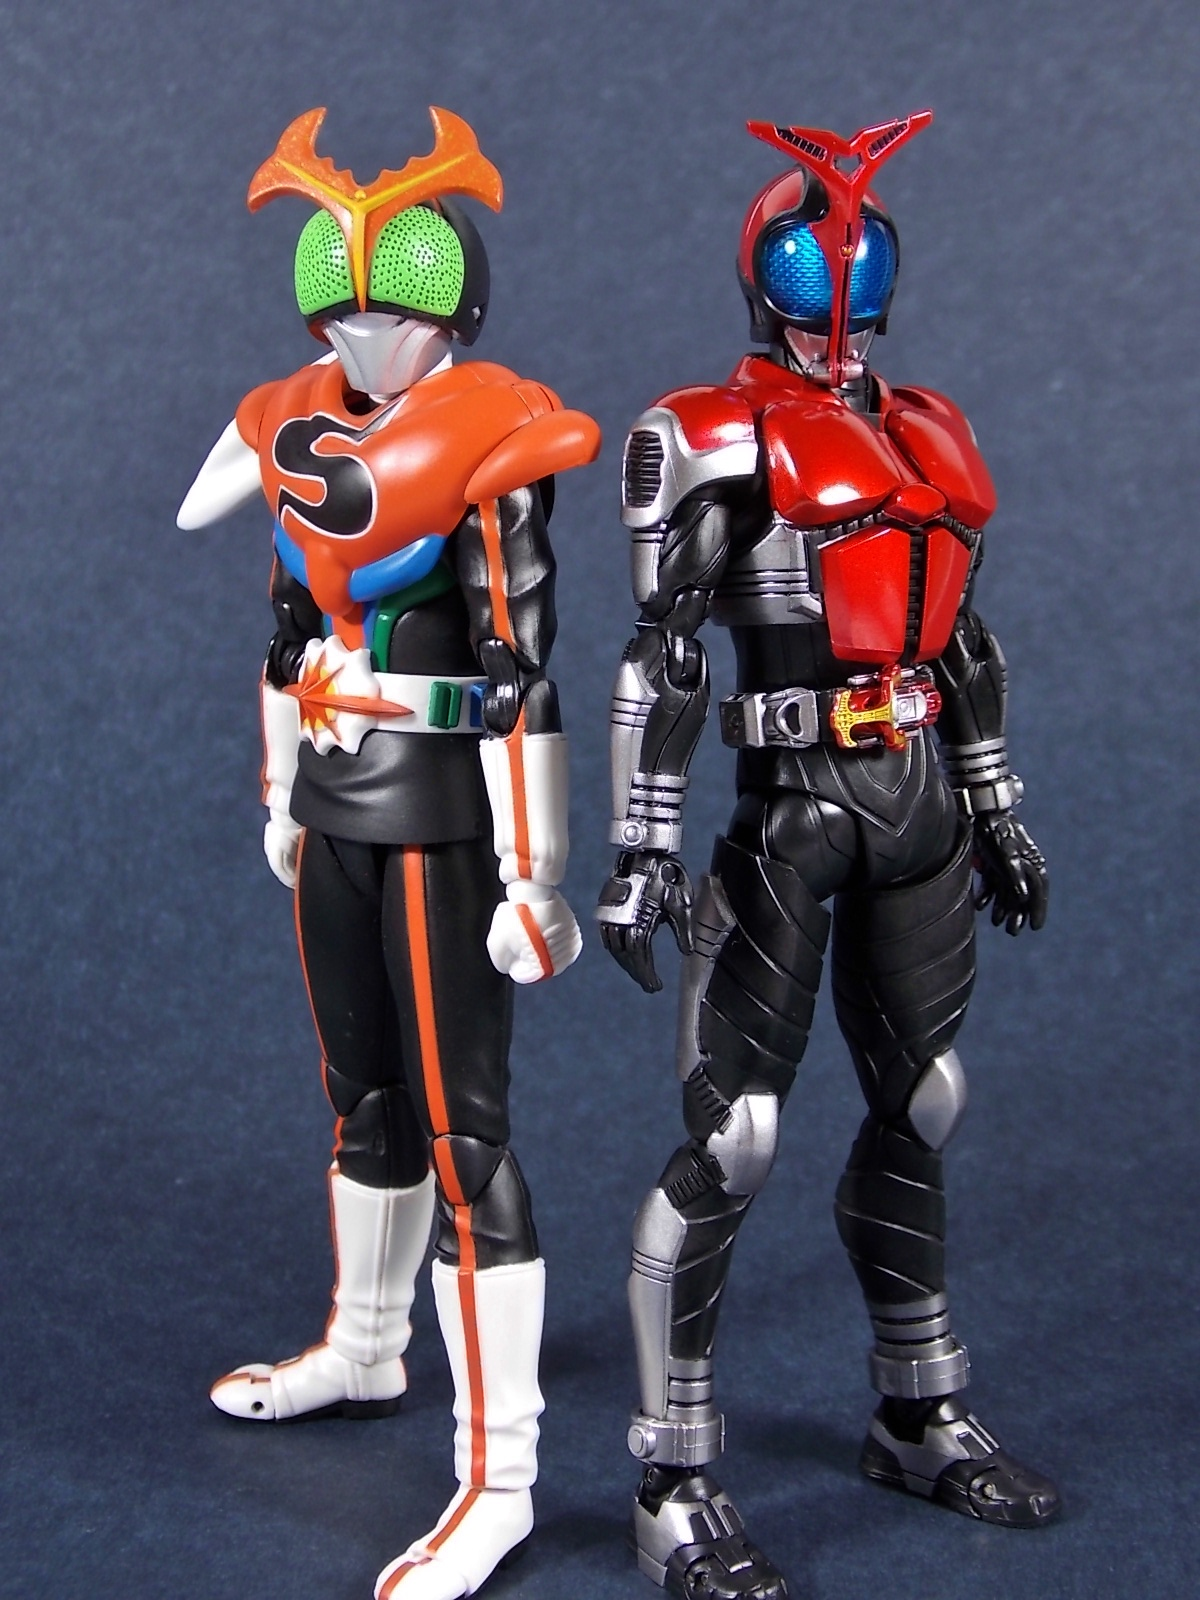 S H E Together Forever Hebe: S.H. Figuarts Kamen Rider Kabuto Renewal Gallery